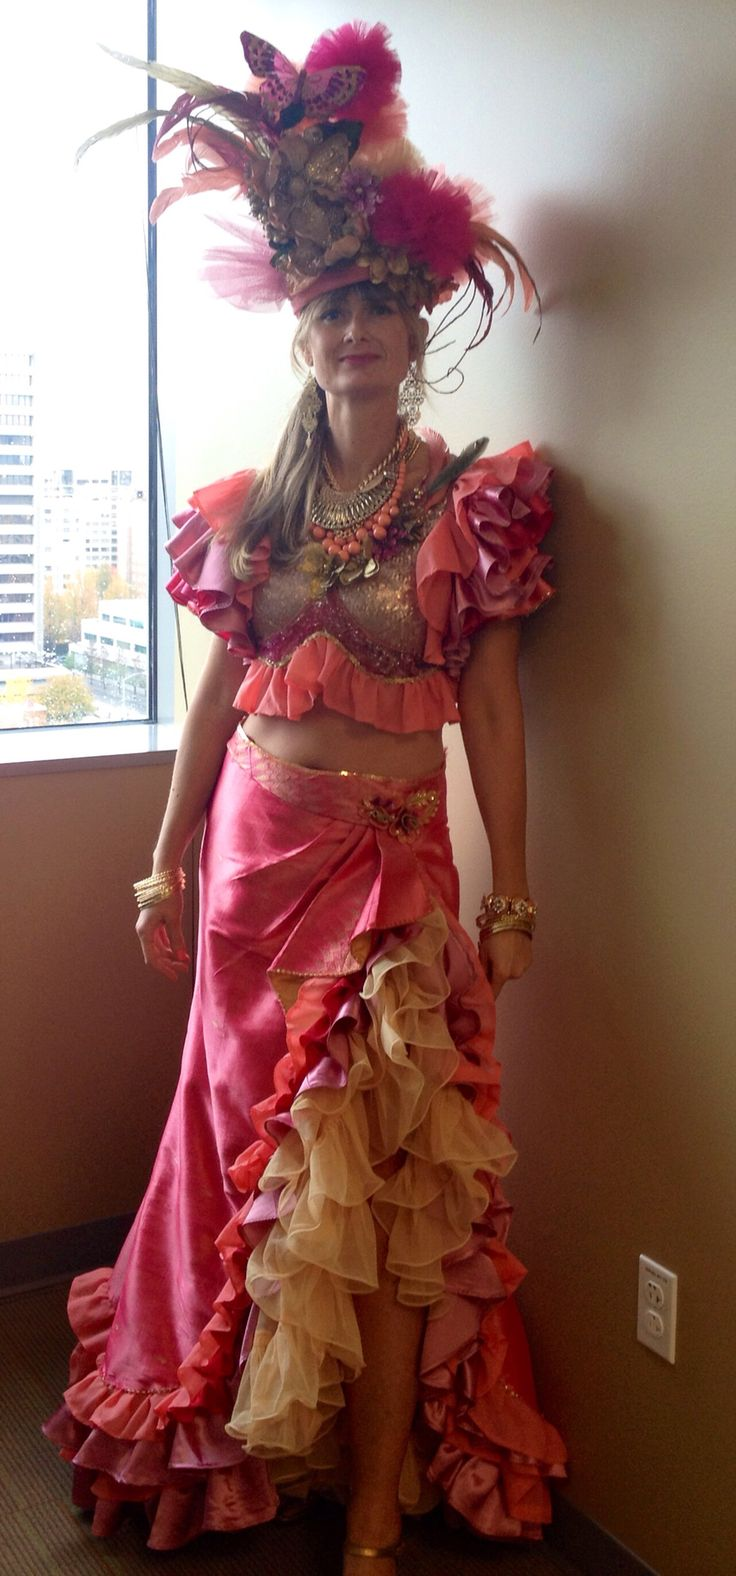 Absolutely awesome Captain Glitterpants!  Carmen Miranda costume 2014